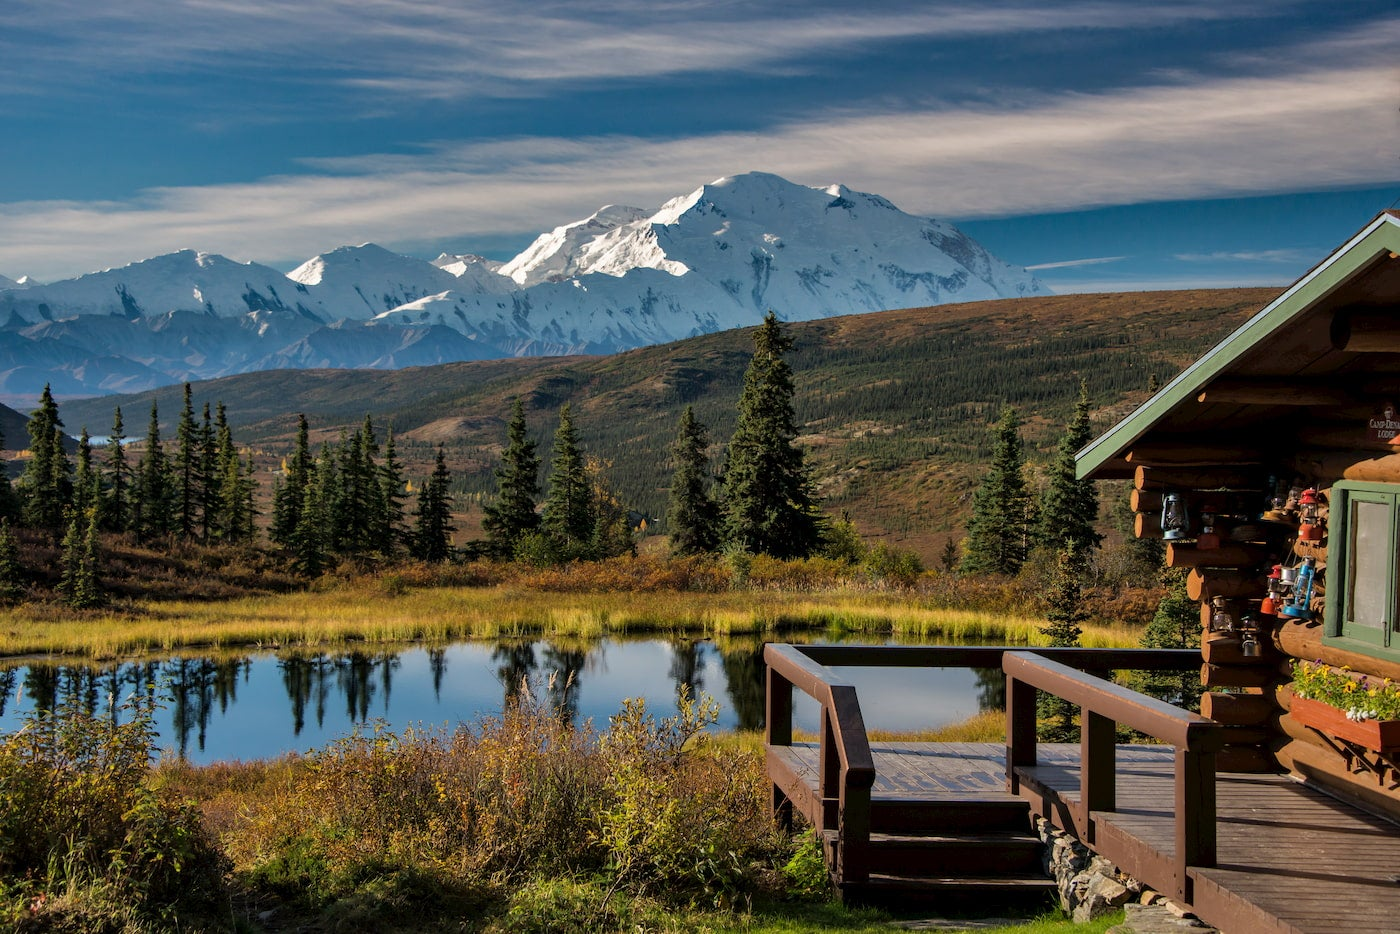 Lodge with Denali in the background.